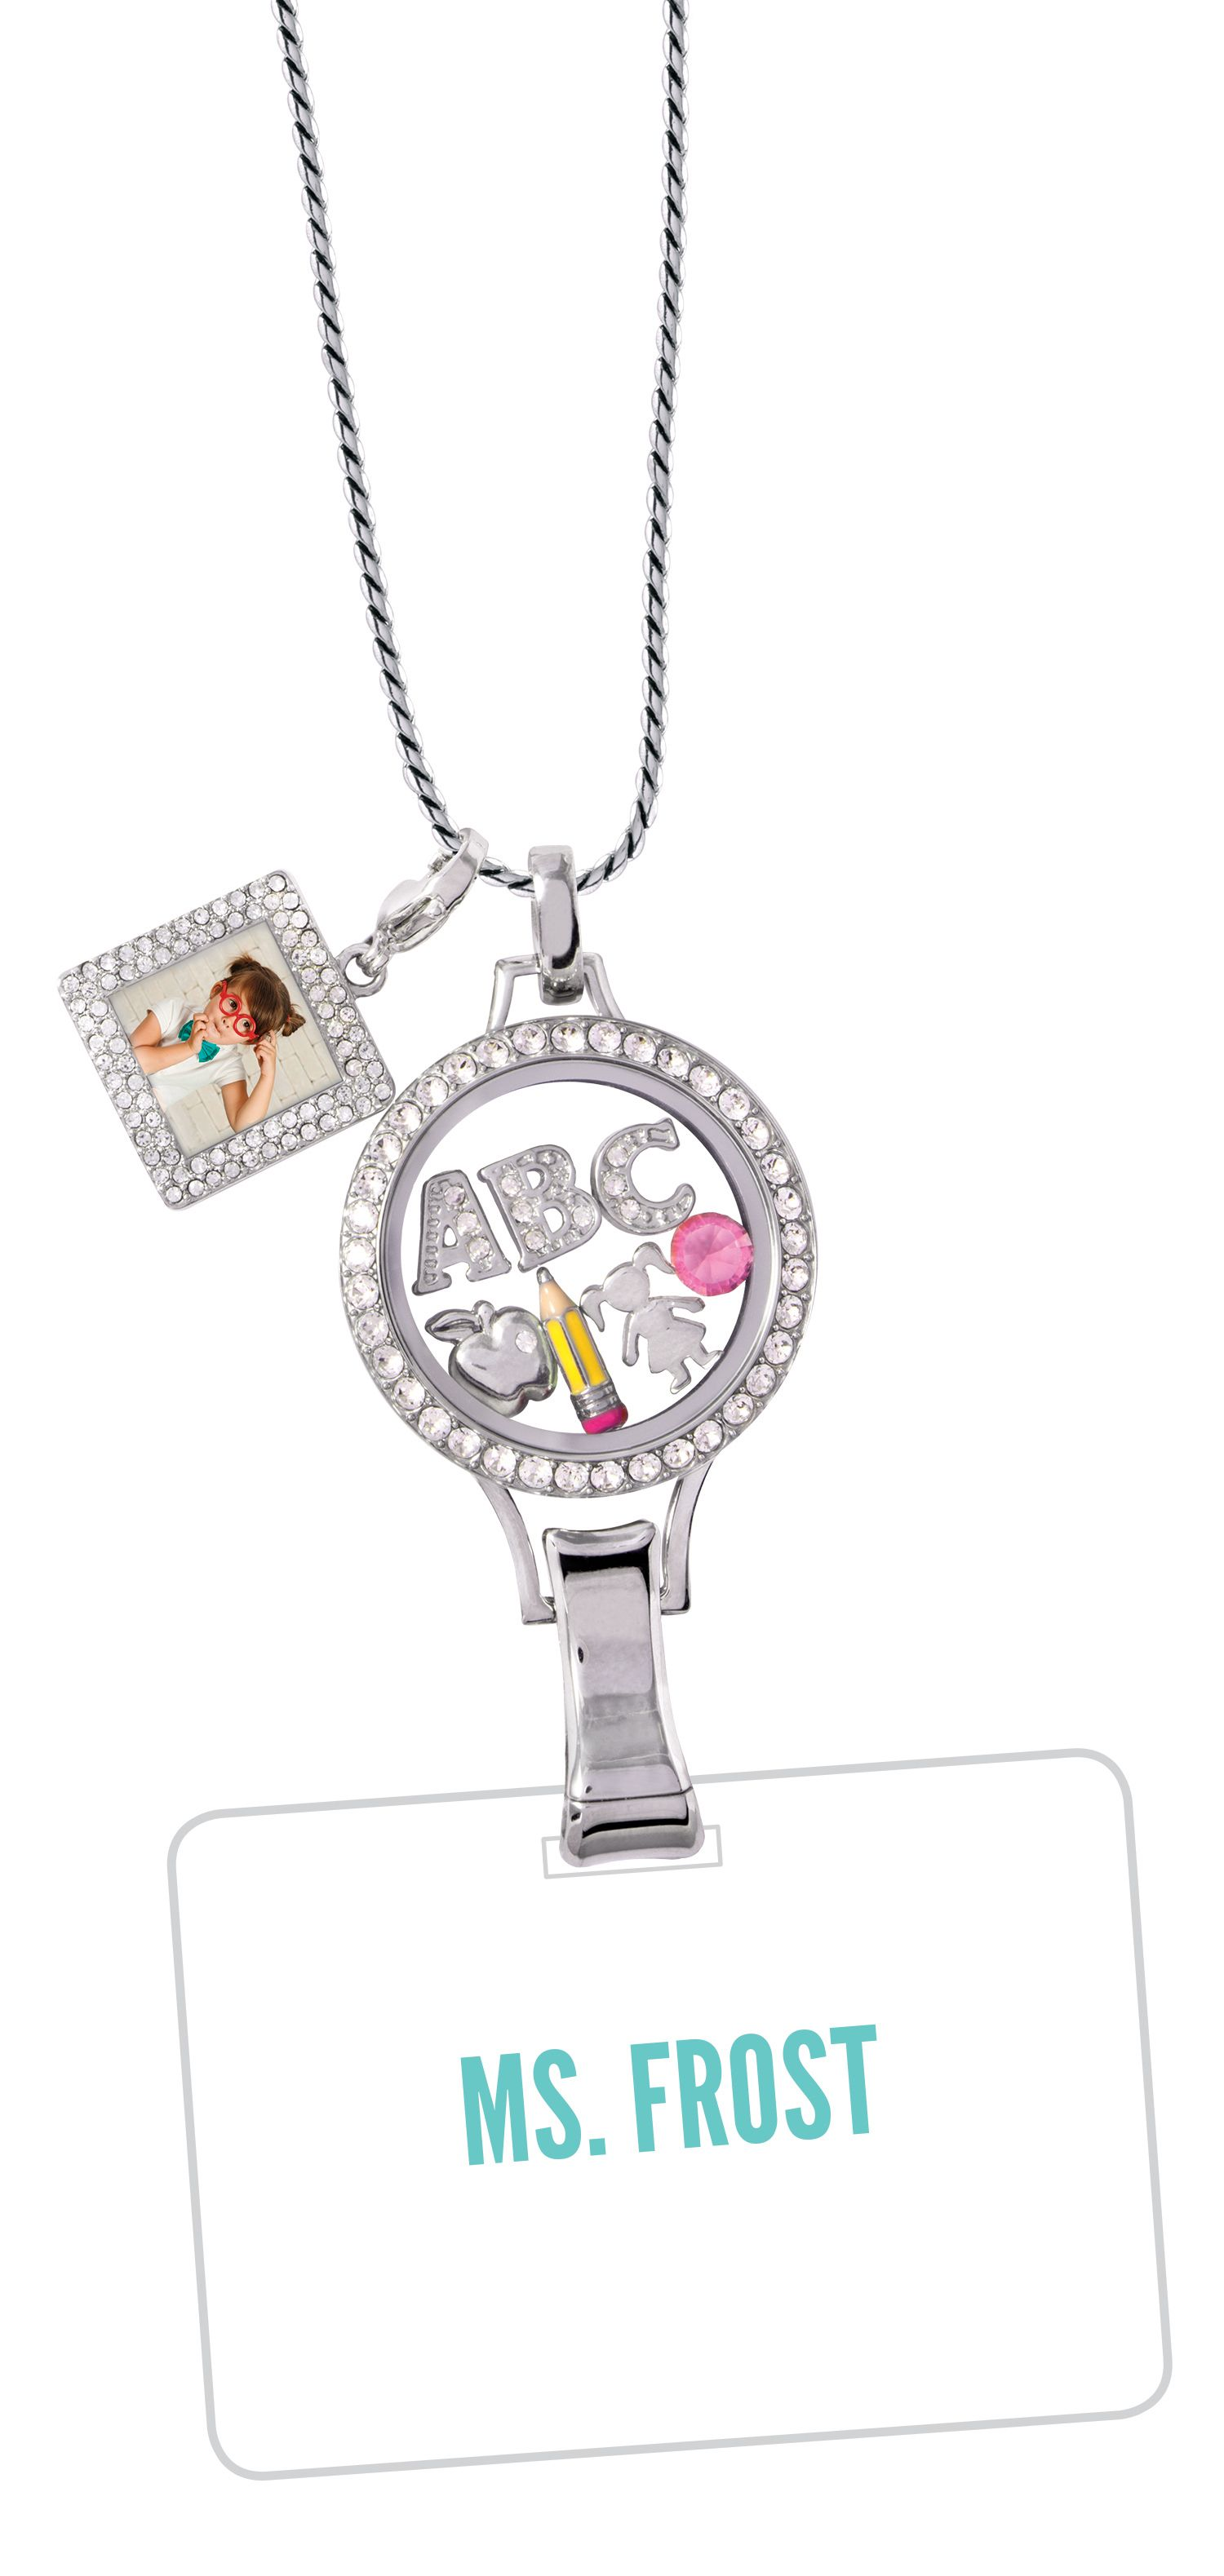 Pin by Ashley D'Angelo on Origami owl | Origami owl ... - photo#7